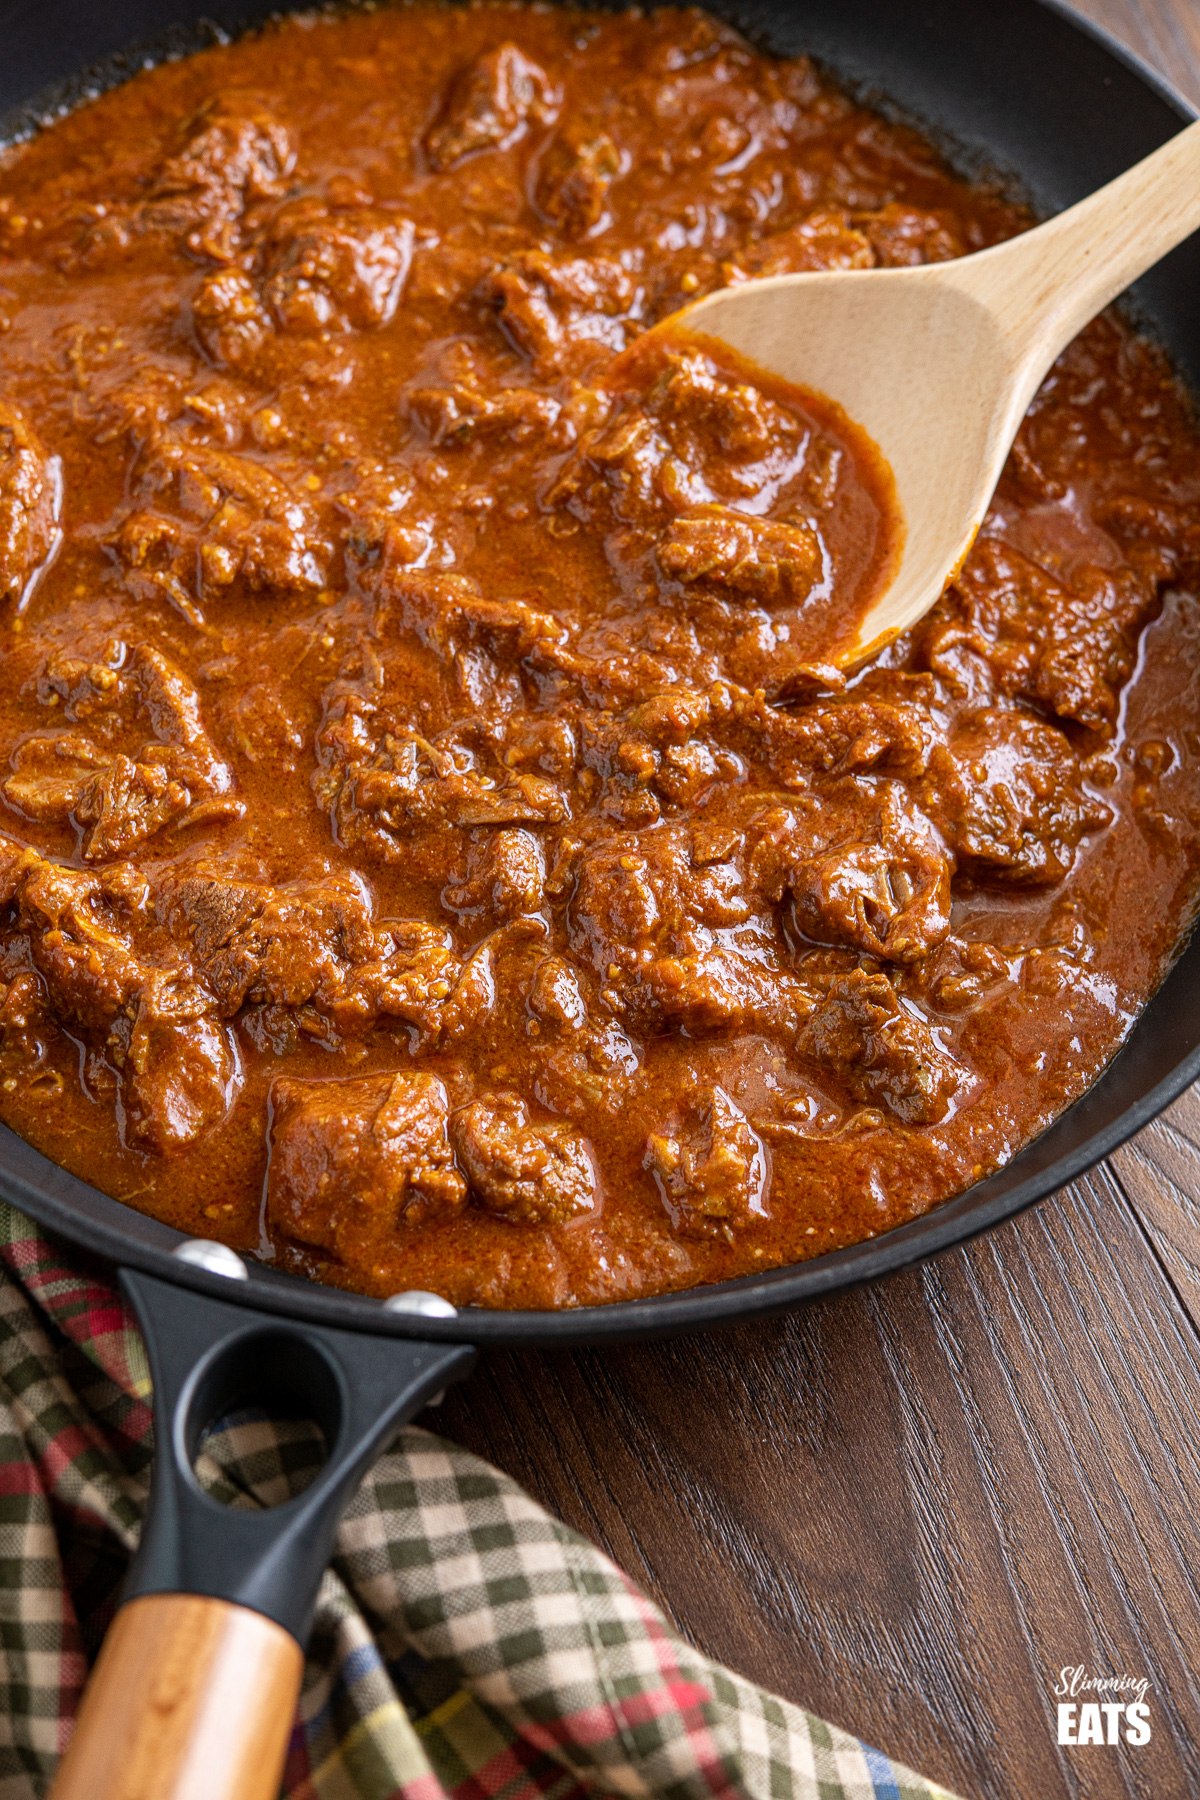 lamb rogan josh in black frying pan with wooden handle on wooden board, wooden spoon placed in pan